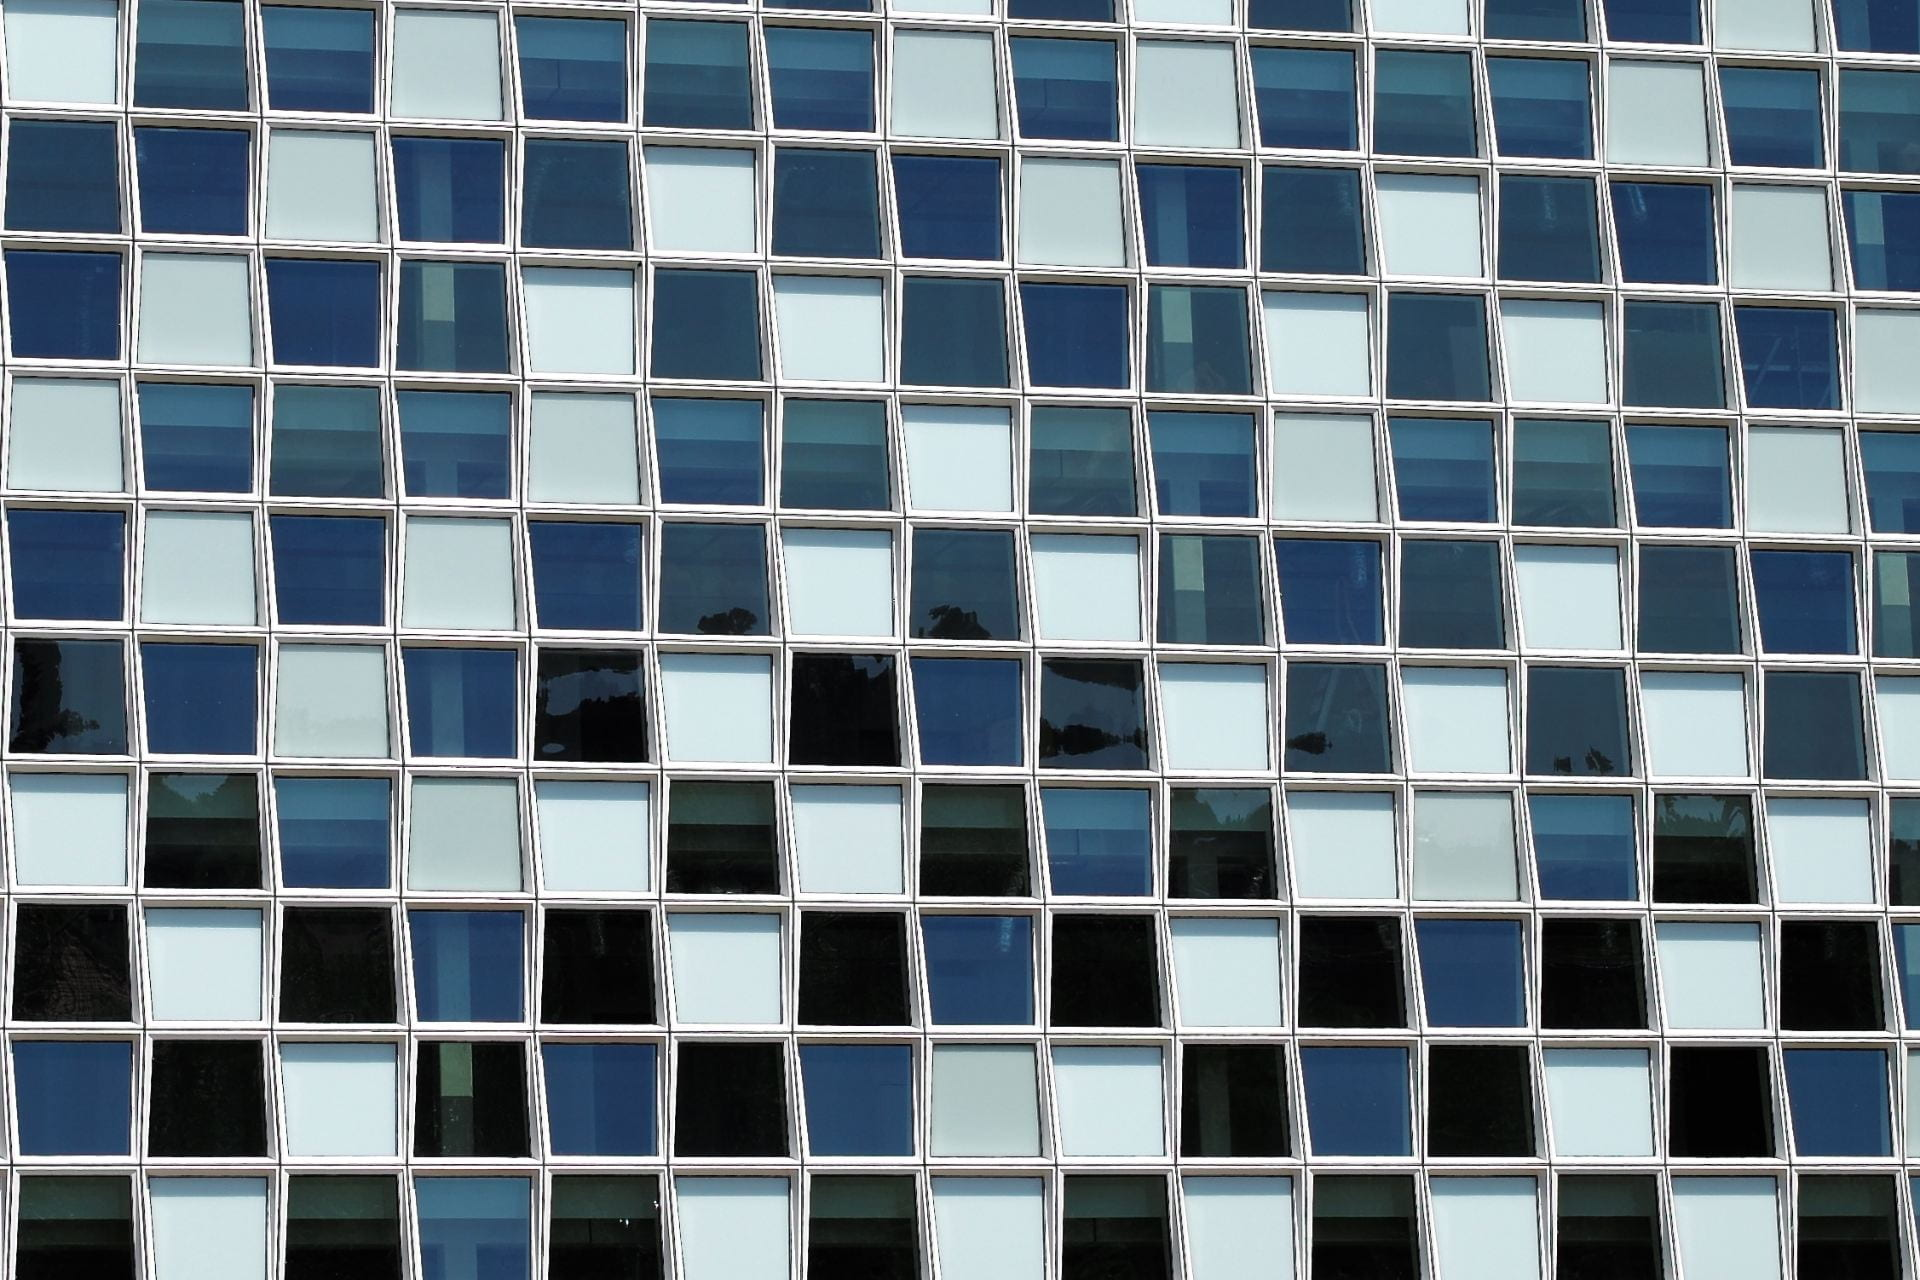 Windows of the International Criminal Court (ICC) in The Hague. Source: Roman Boed, Creative Commons